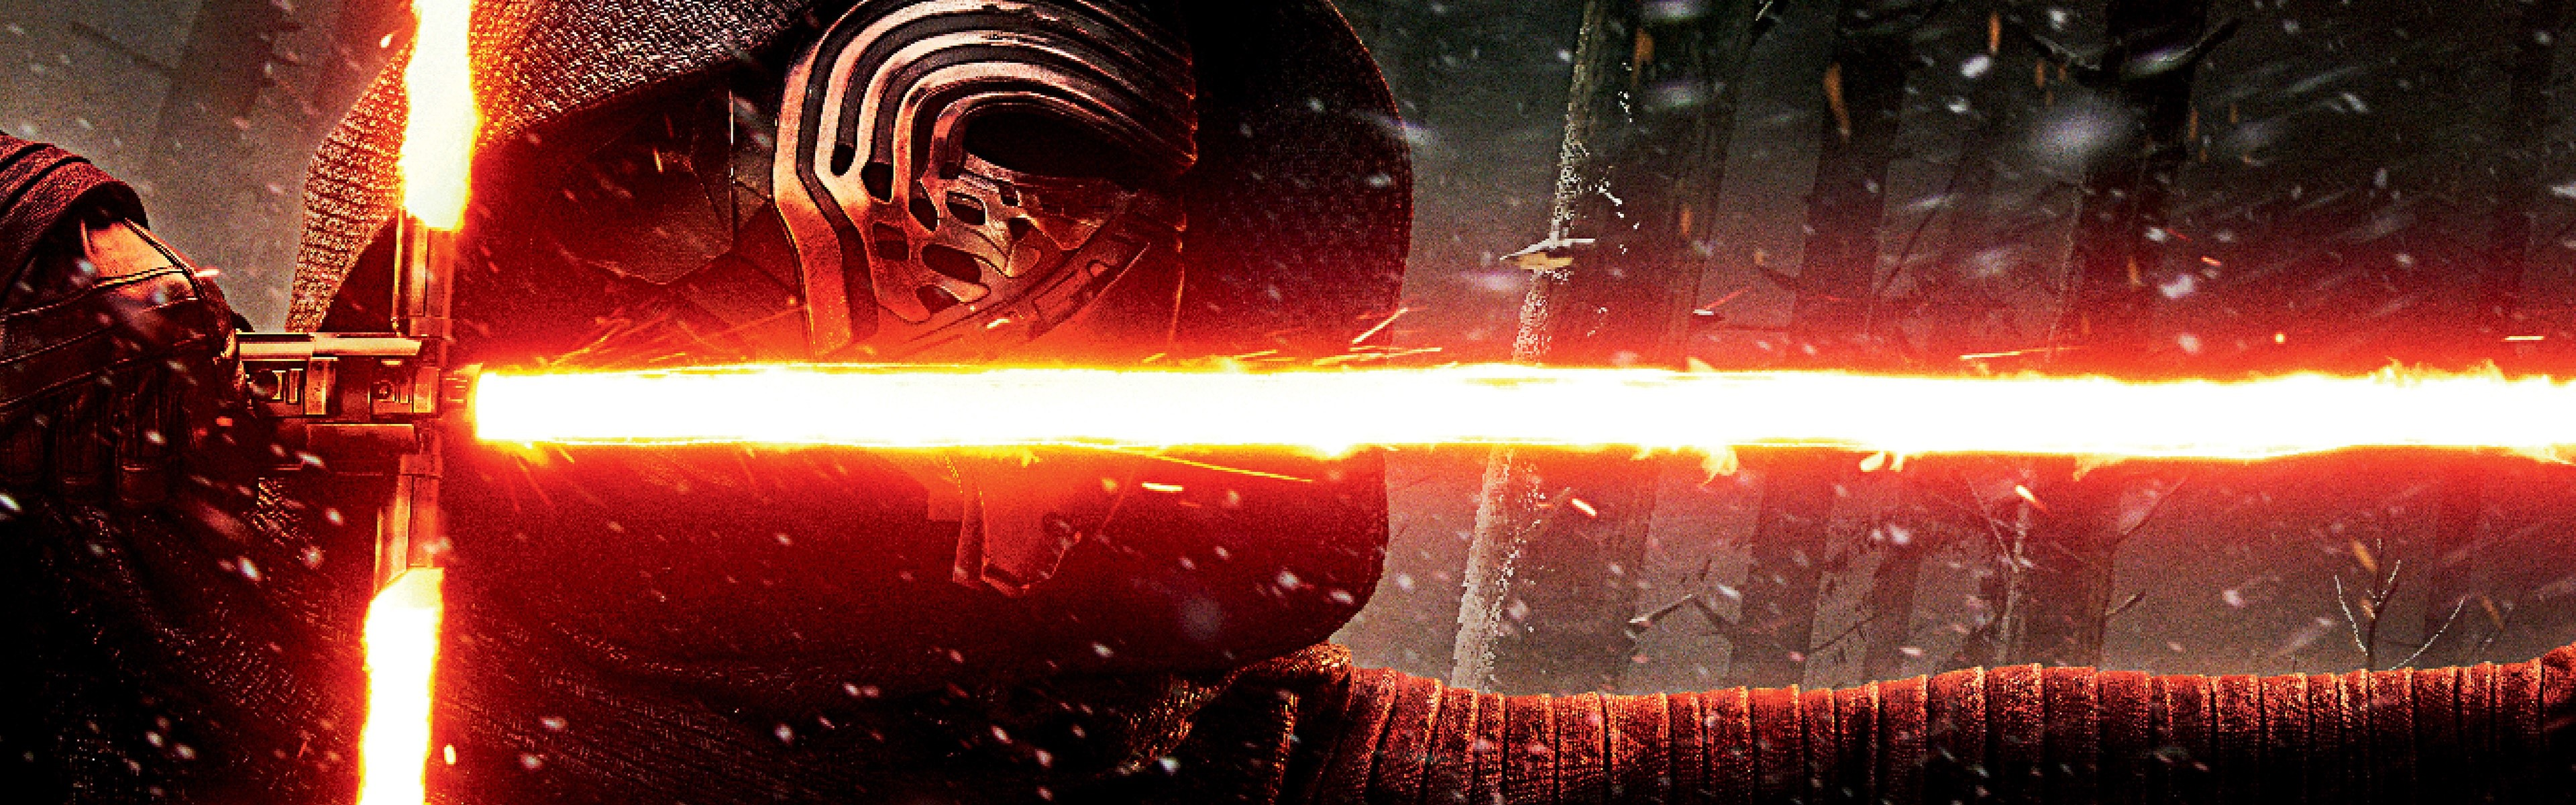 Wallpaper Kylo Ren lightsaber